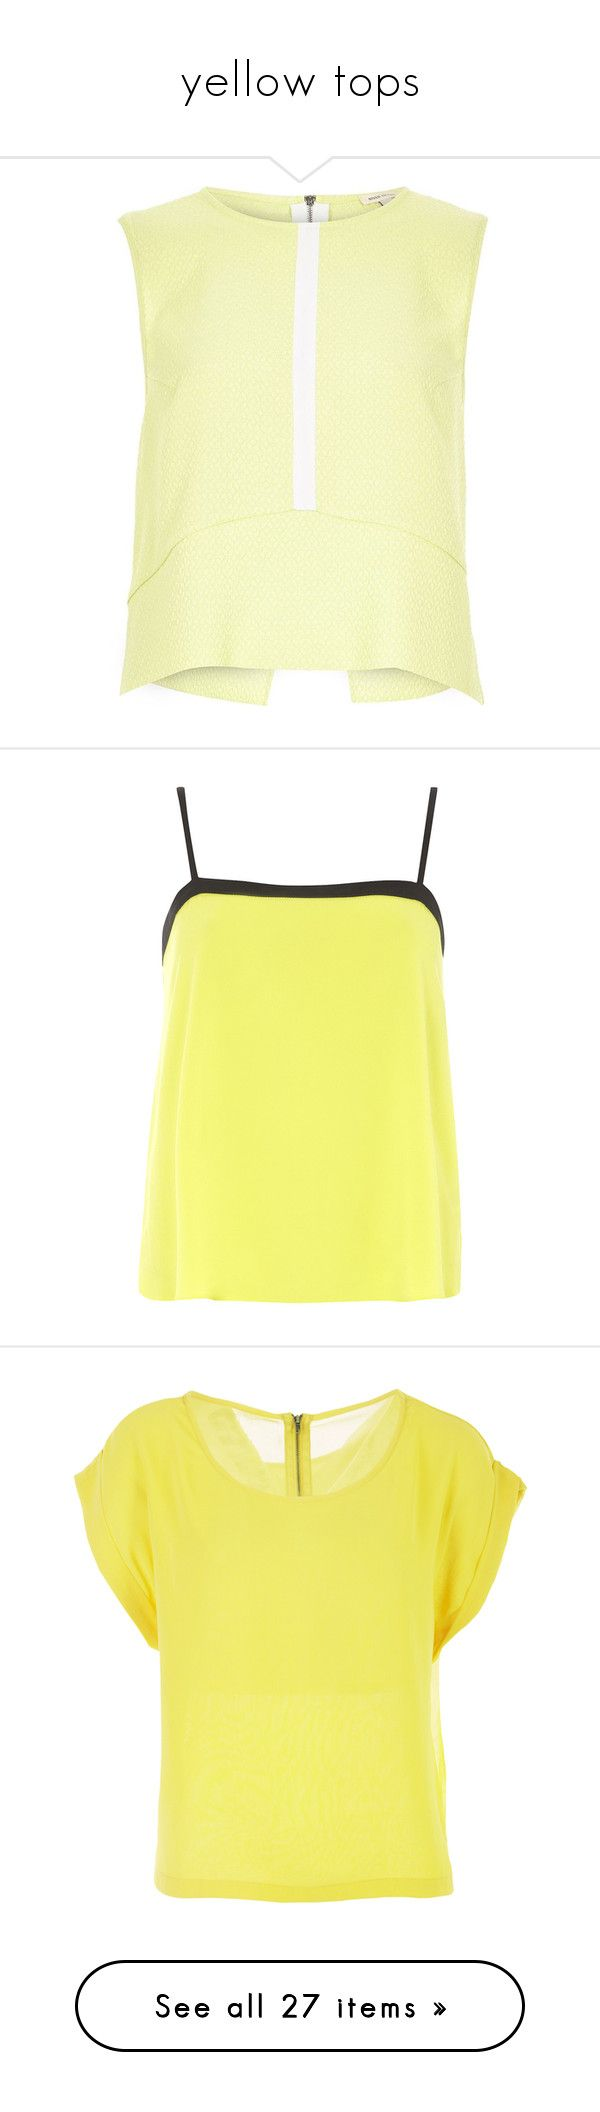 """""""yellow tops"""" by lulucosby ❤ liked on Polyvore featuring tops, lime, sale, women, tall tank, striped top, lime green top, lime green tank top, yellow tank top and shirts"""